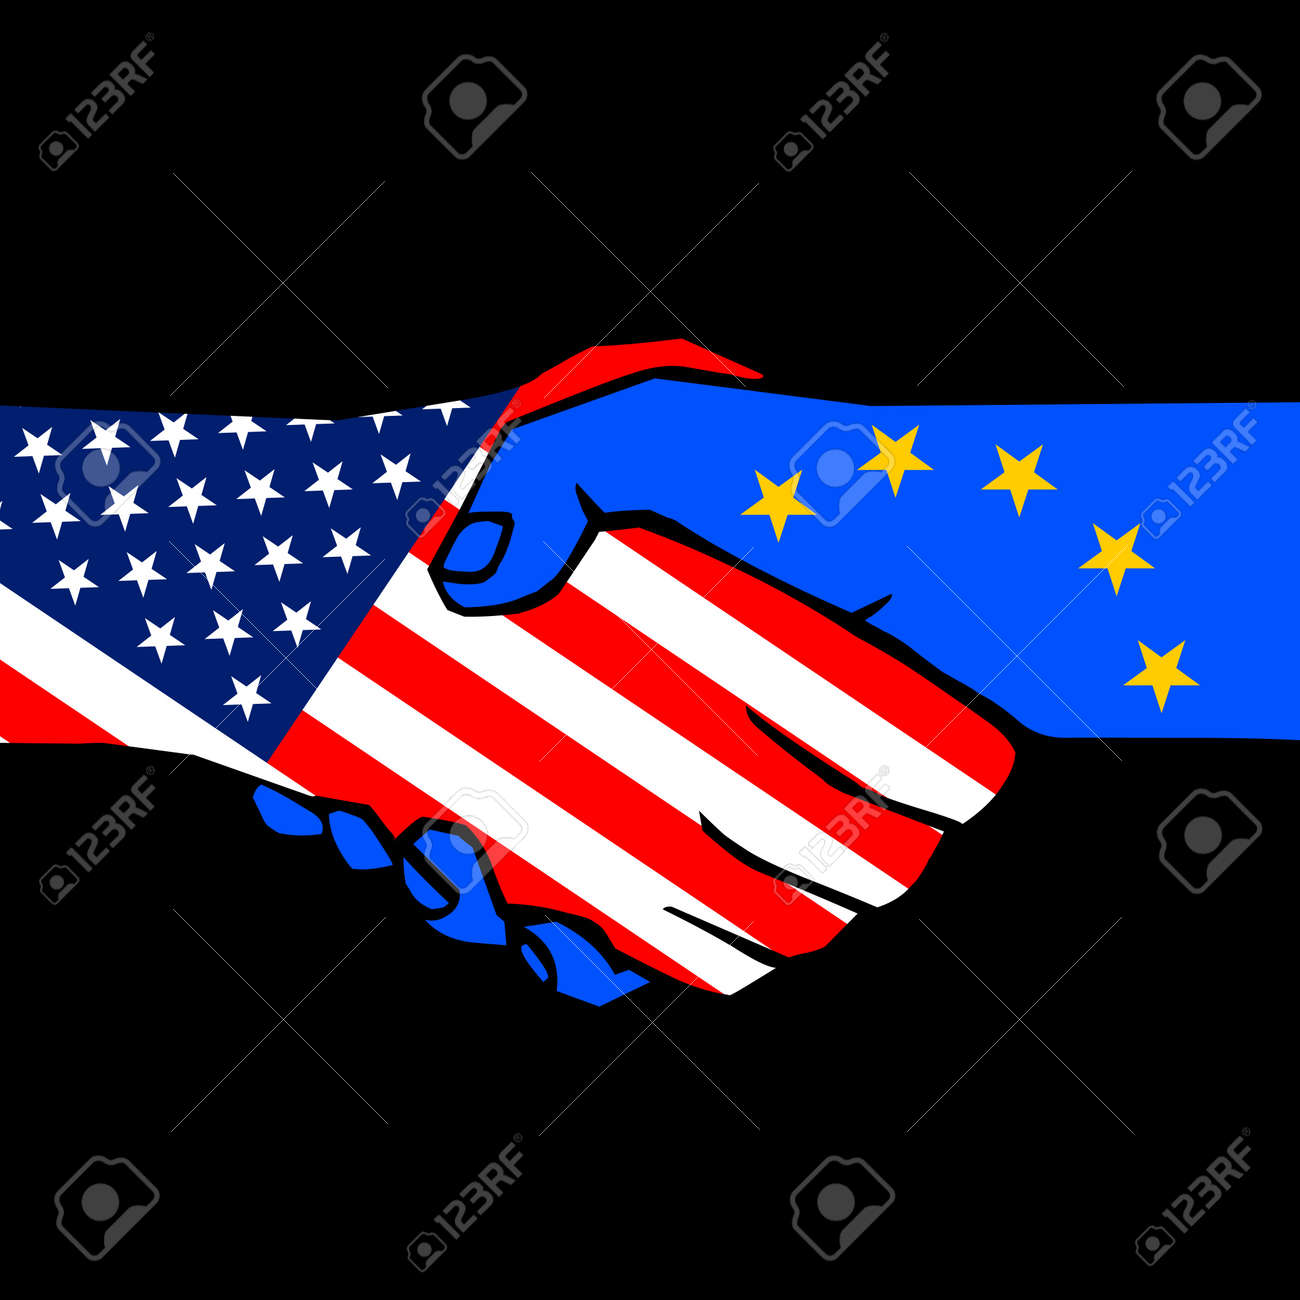 handshake of two states on black Stock Vector - 11919612